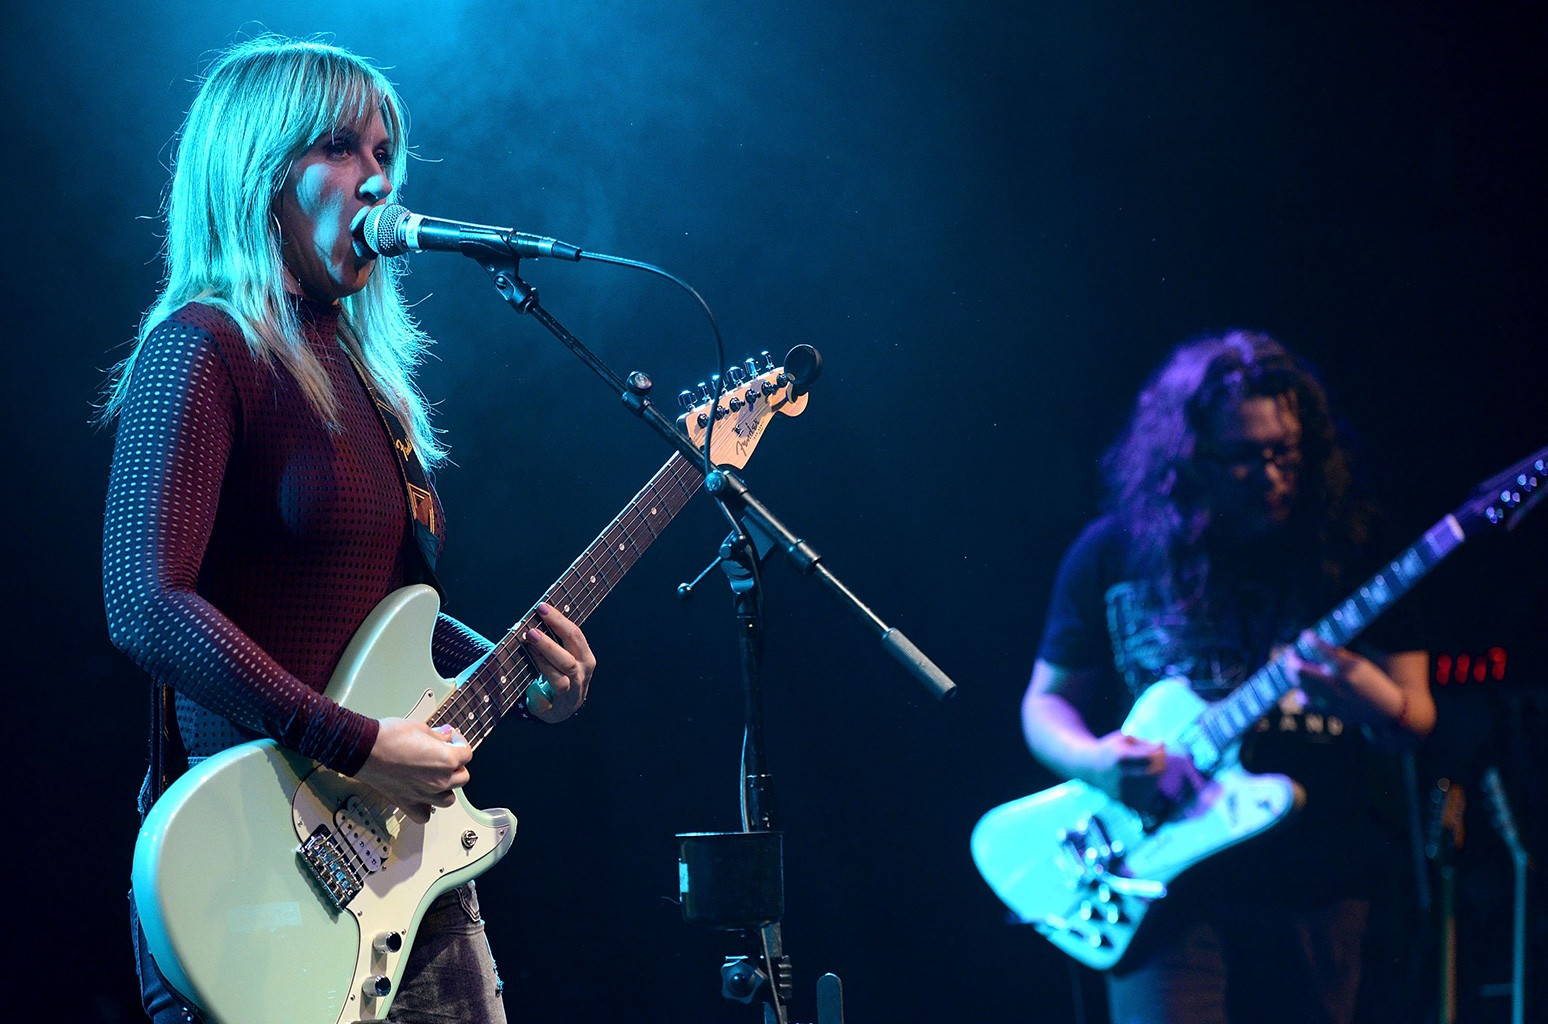 """Liz Phair and Bobb Bruno of Best Coast perform onstage during the """"Don't Site Down: Planned Parenthood Benefit Concert"""" at El Rey Theatre on March 4, 2017 in Los Angeles."""